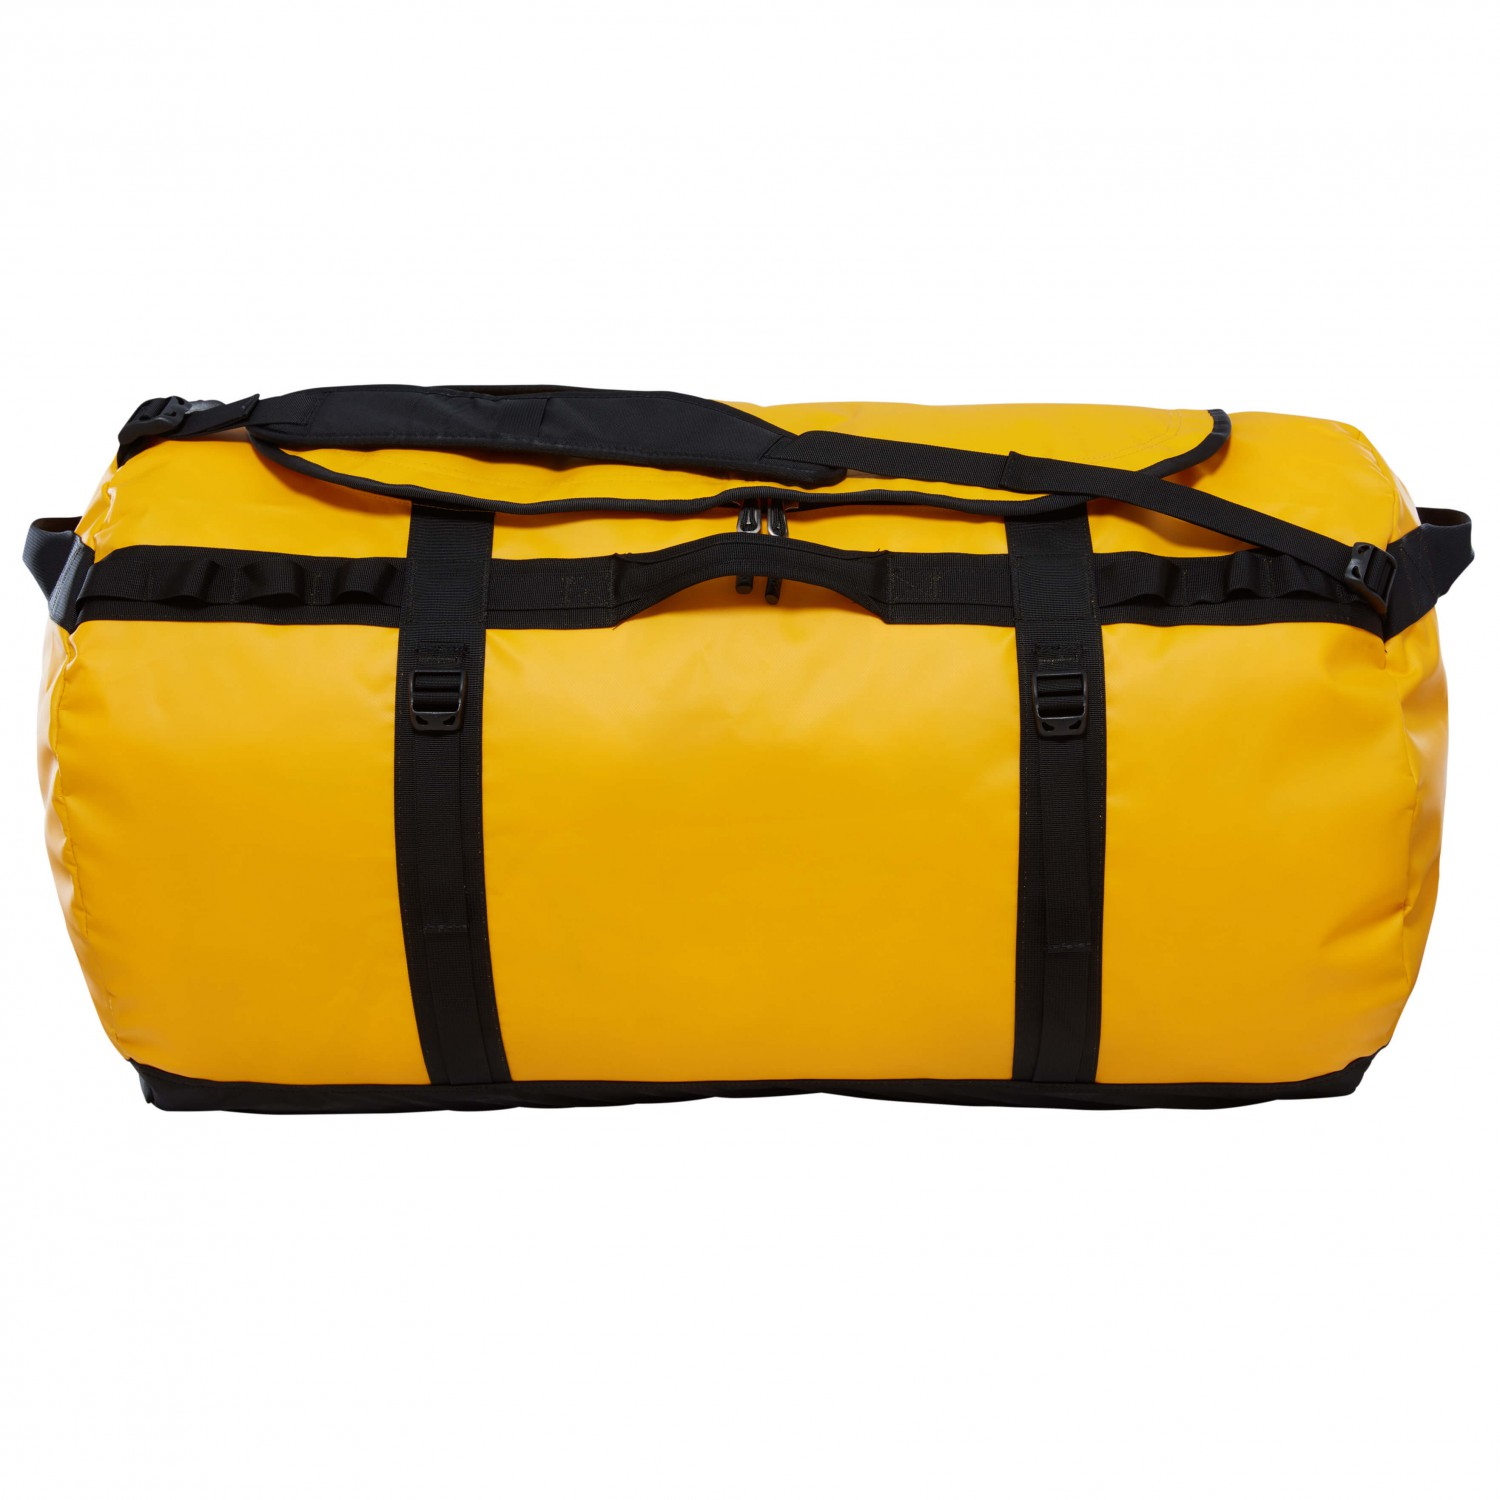 The North Face Sac de voyage Base Camp Duffel XXL 1TVAeAuoF